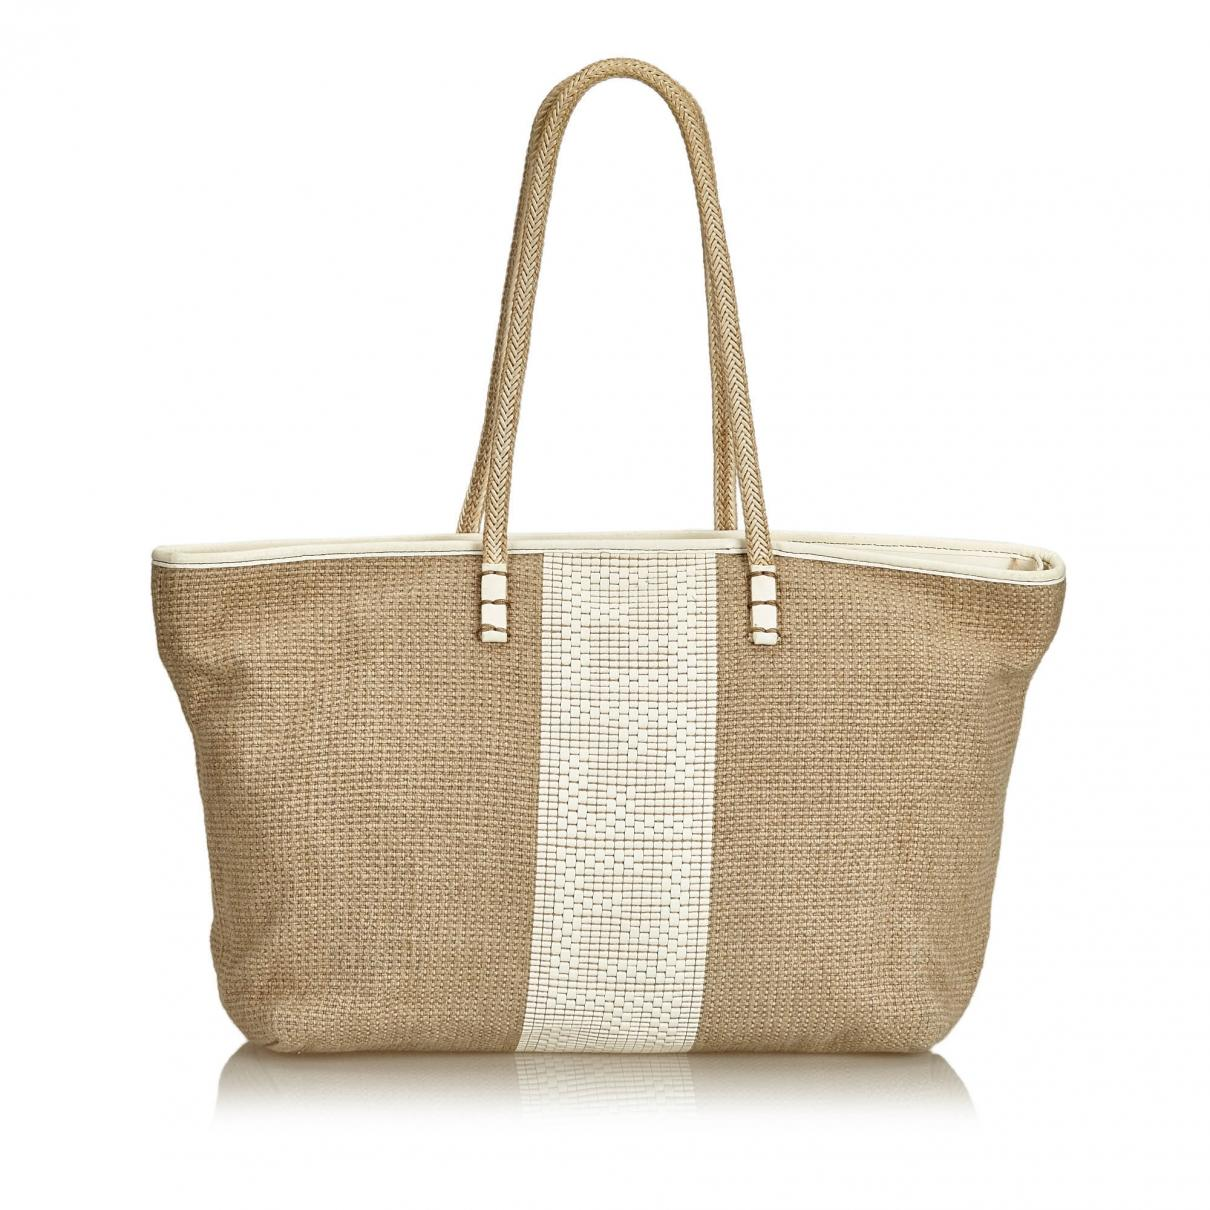 Brown Cloth Lyst Tote Fendi In CrxBoed